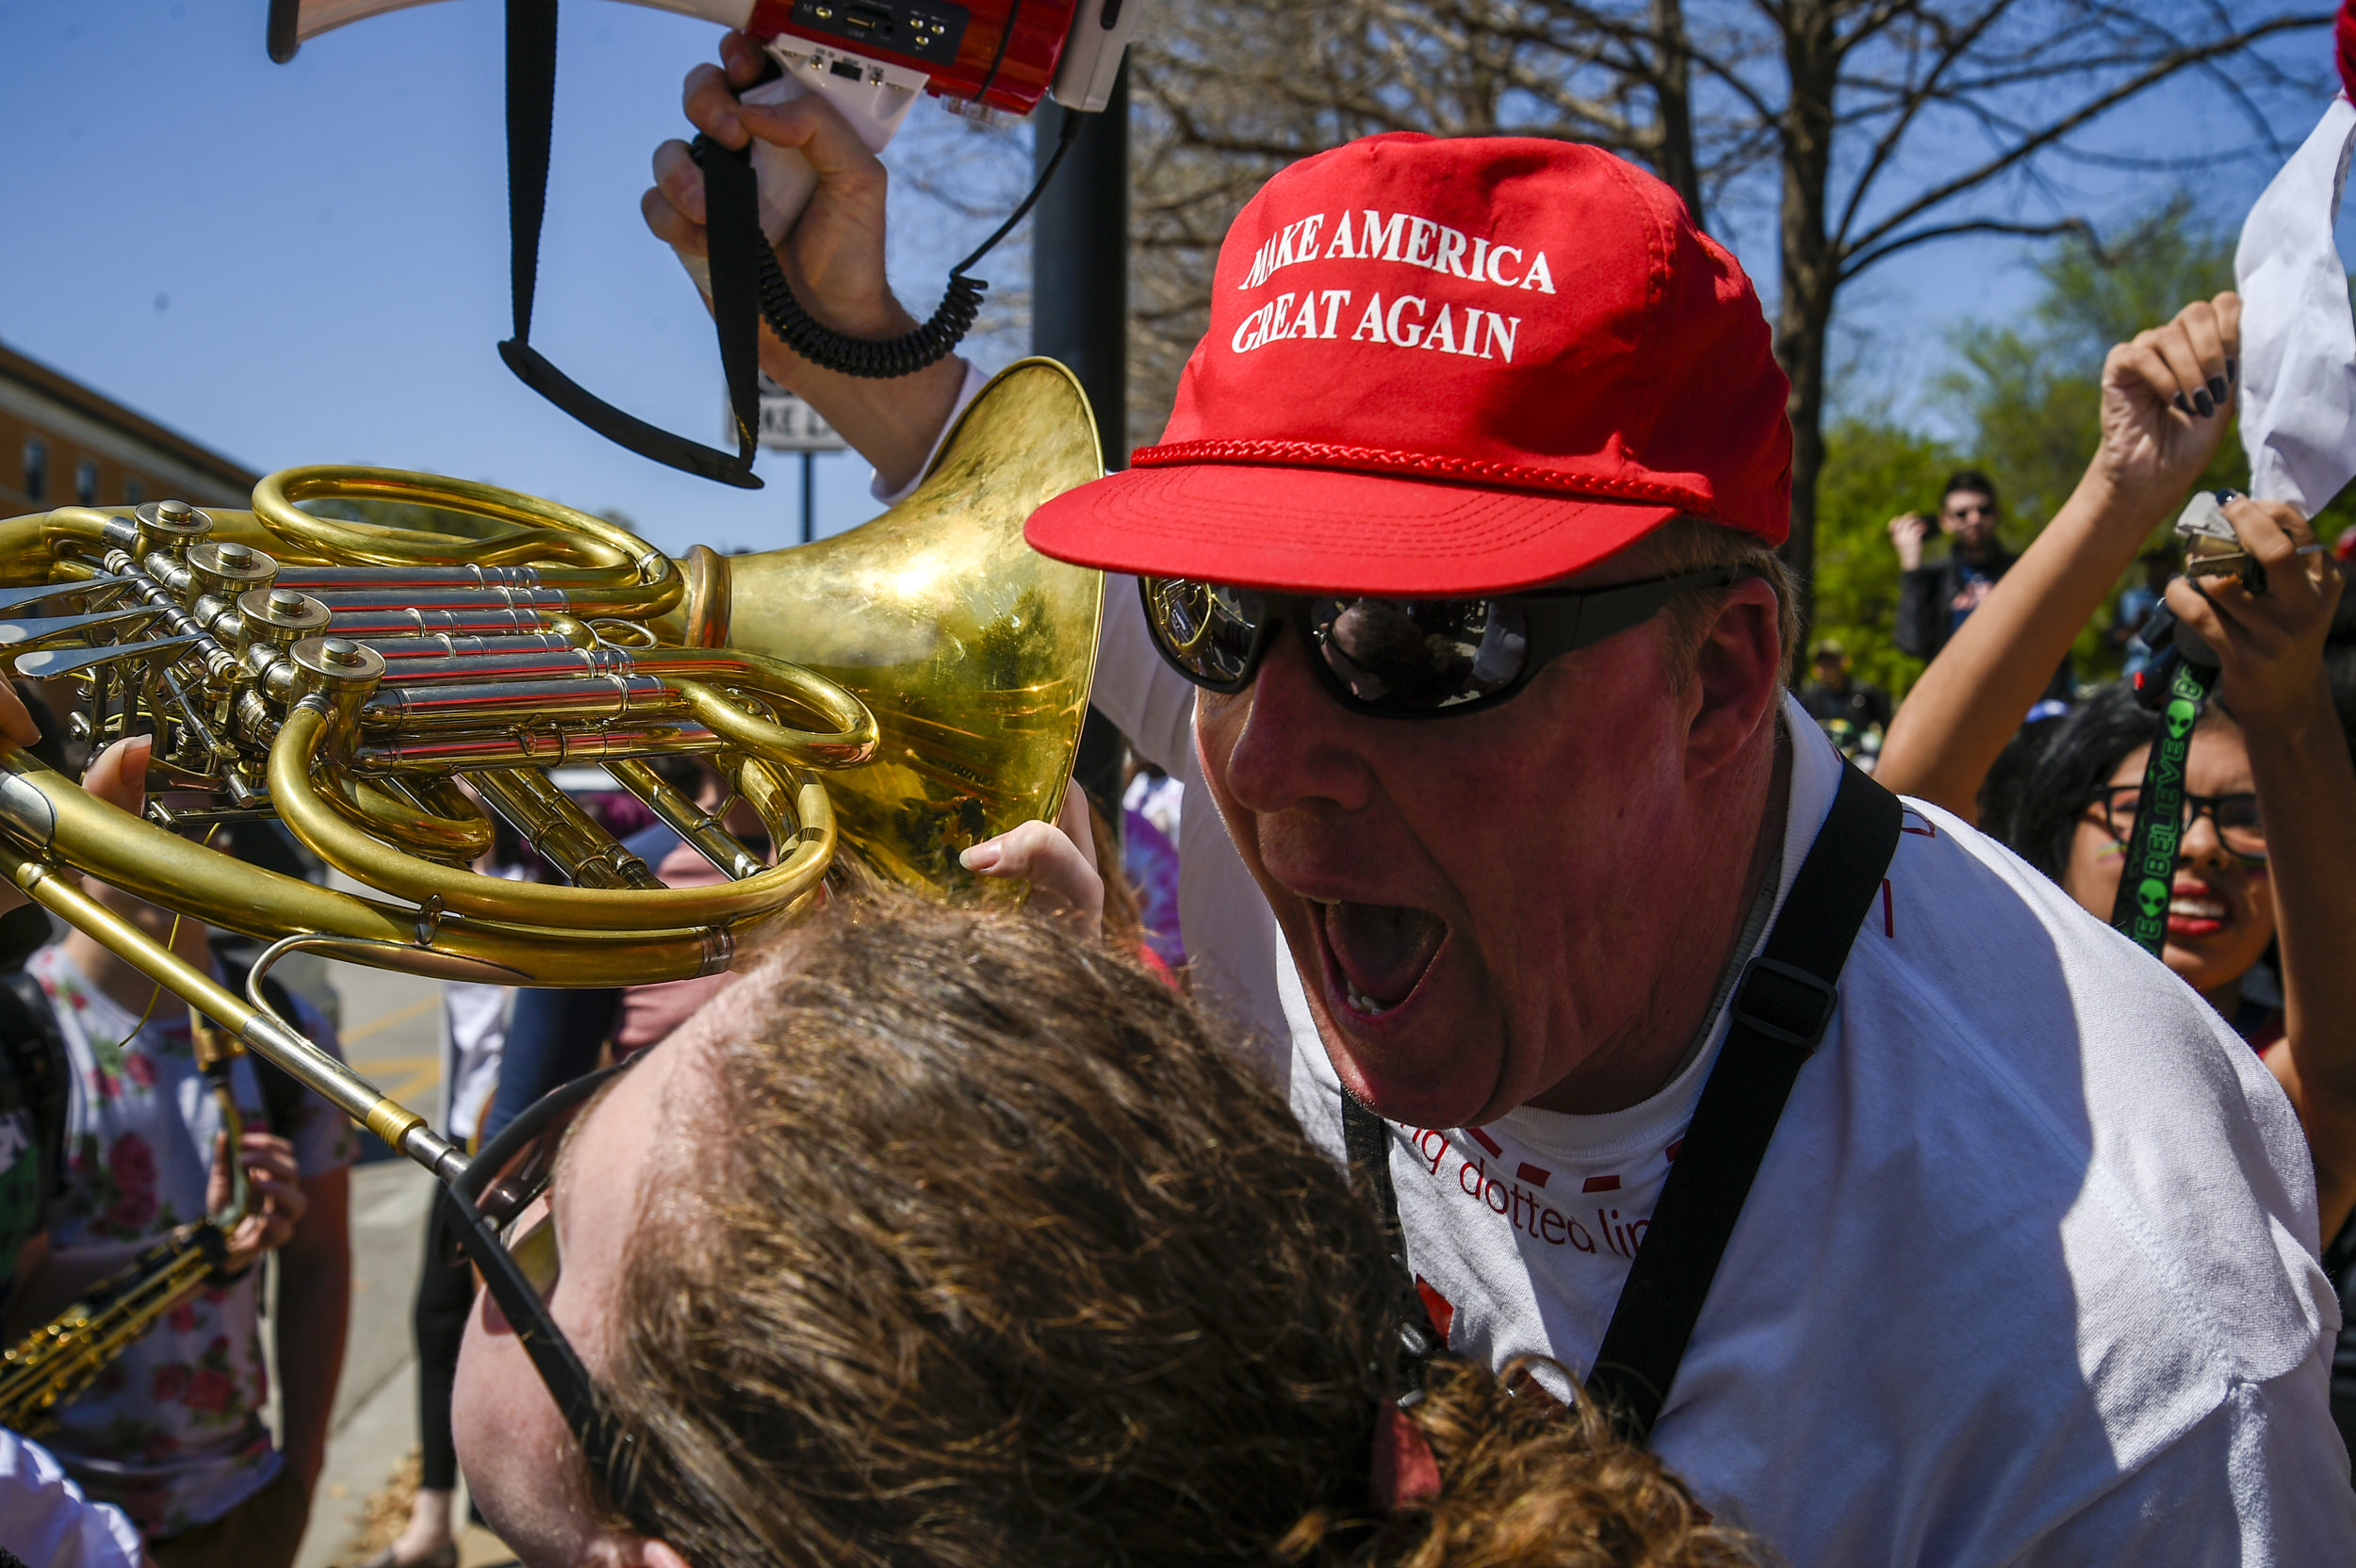 Jim Gilles yells into the ear of Kelli Williams, a UNT music performance student. Williams was previously playing her french horn loudly in Gilles' ear.